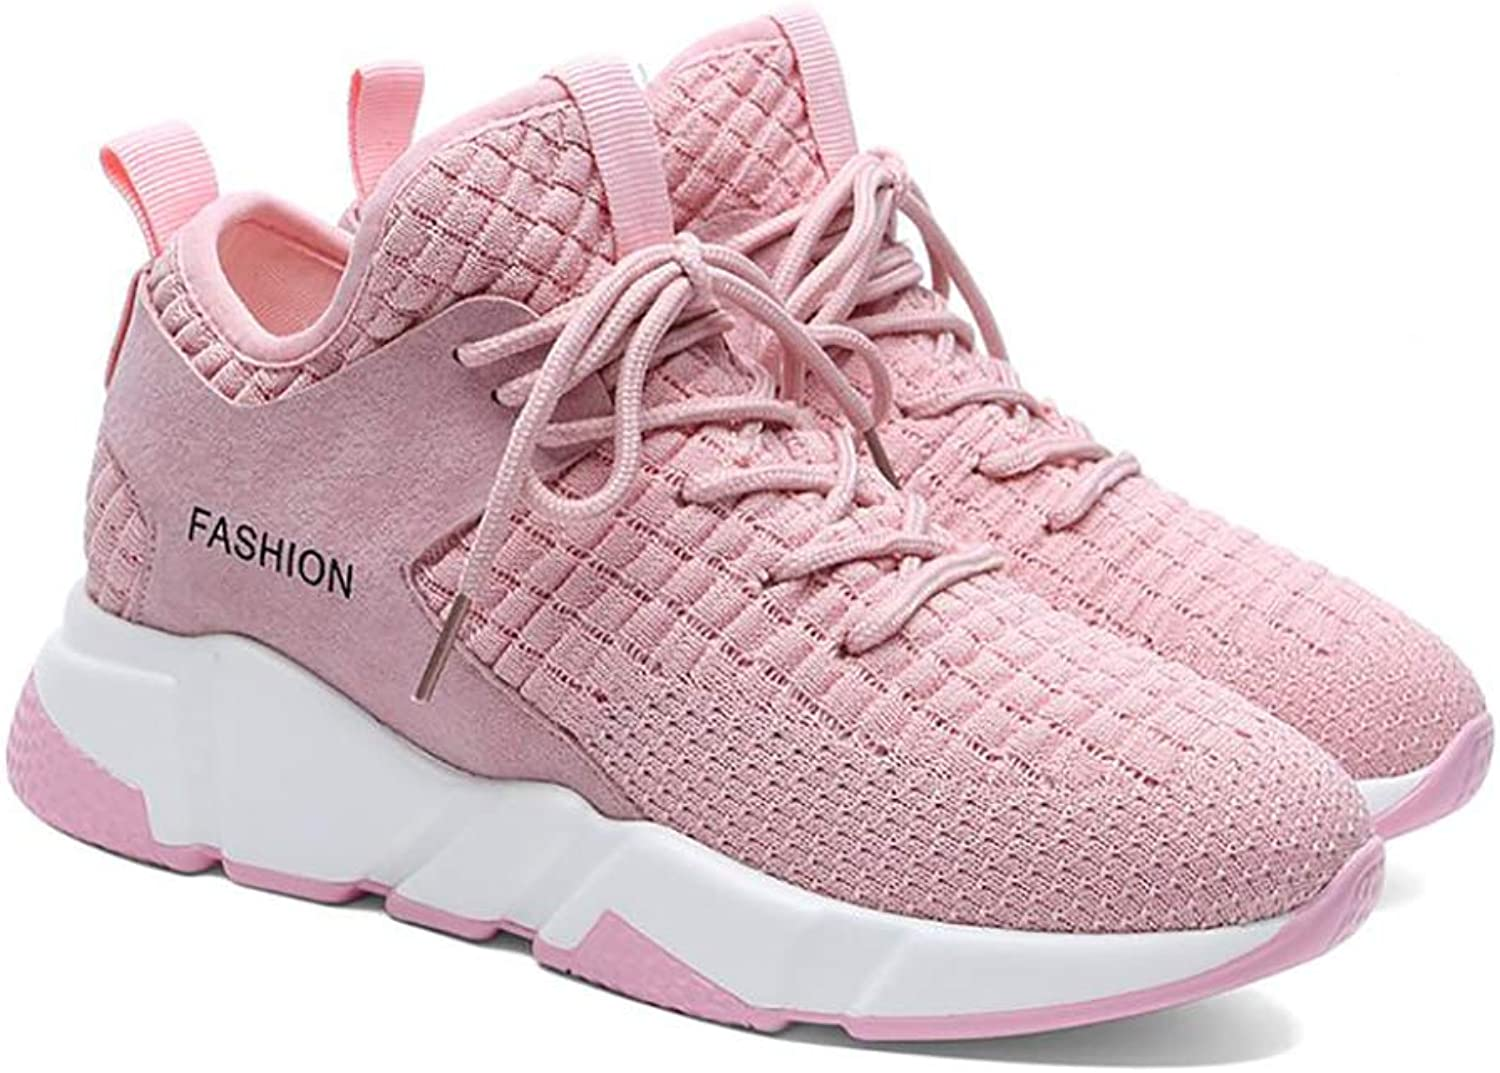 Rcnry Sports shoes, Casual, Women's shoes, Wild, Sneakers